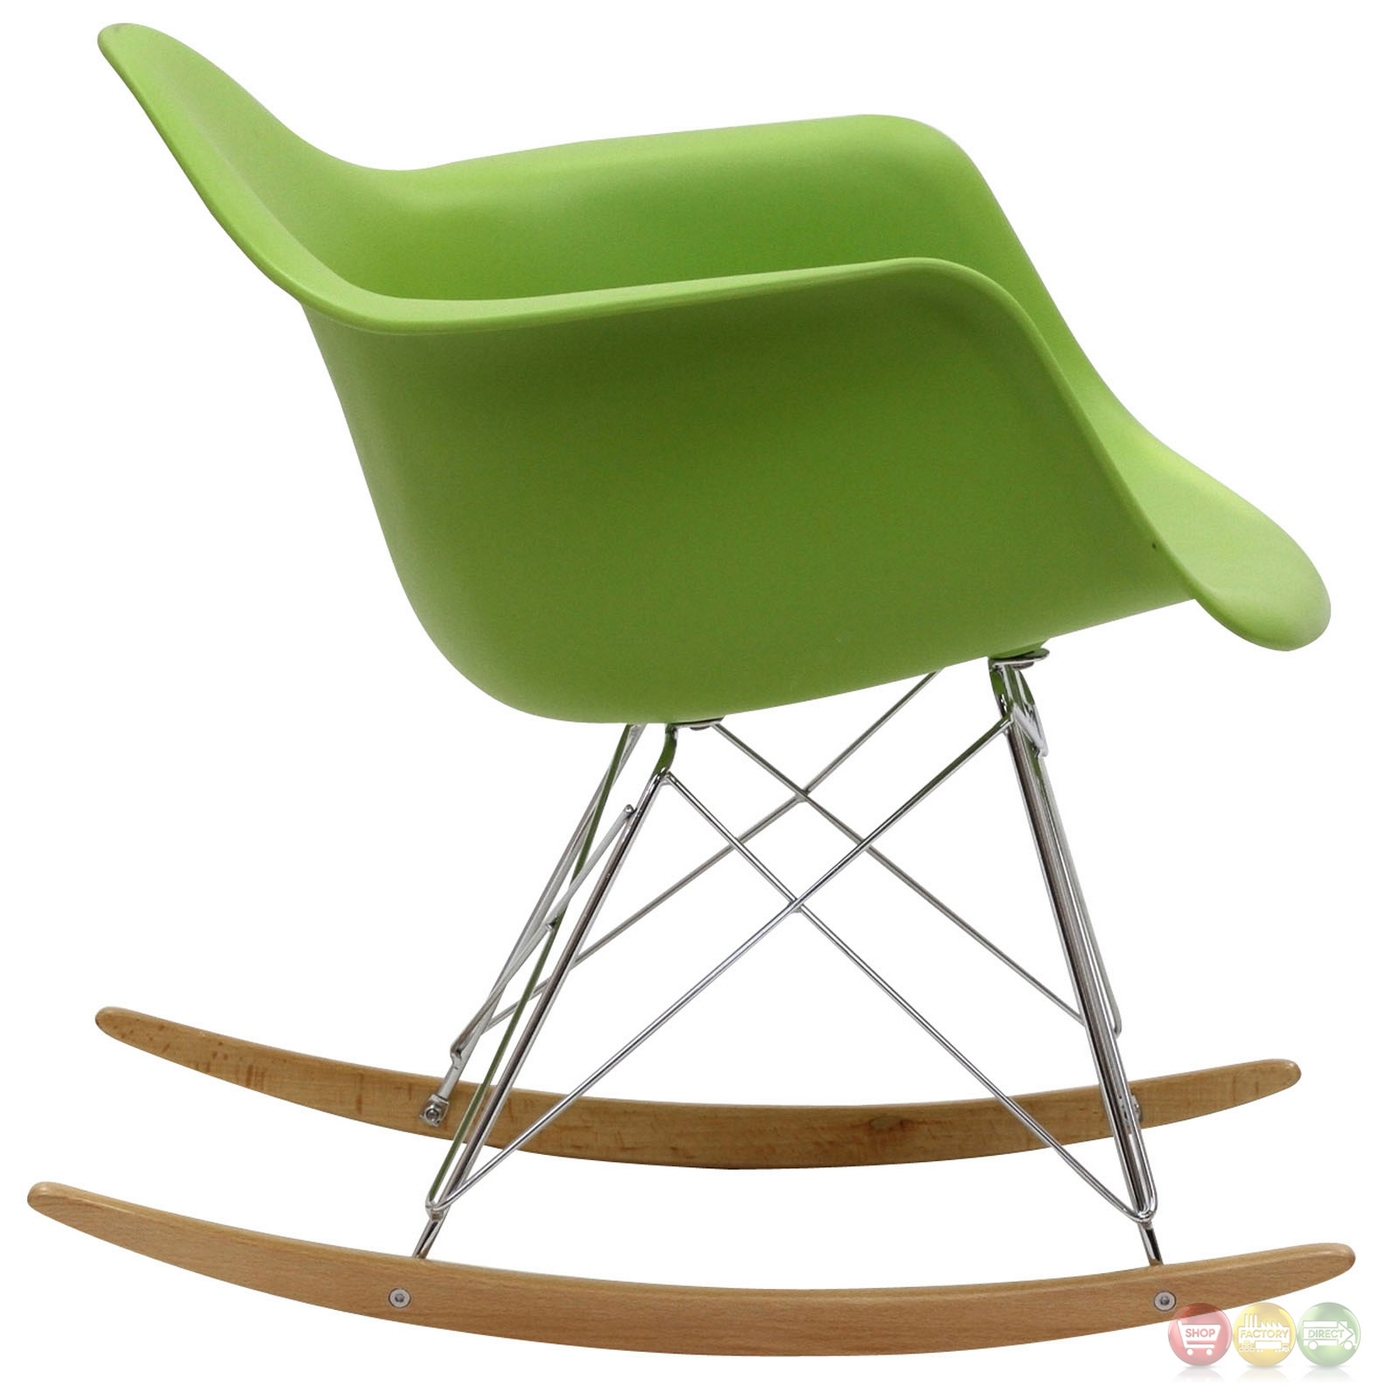 Rocker Molded Plastic Rocking Lounge Chair With Chrome & Wood Base Green